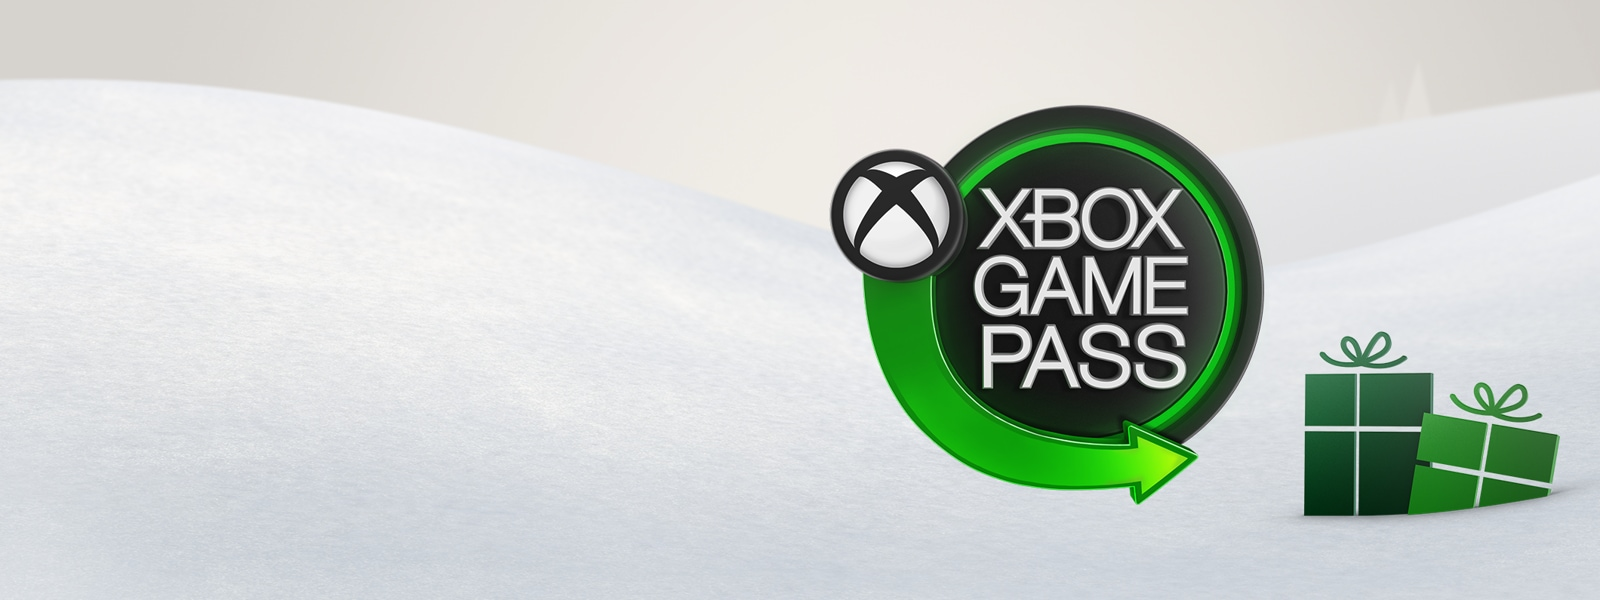 Xbox Game Pass logo with presents